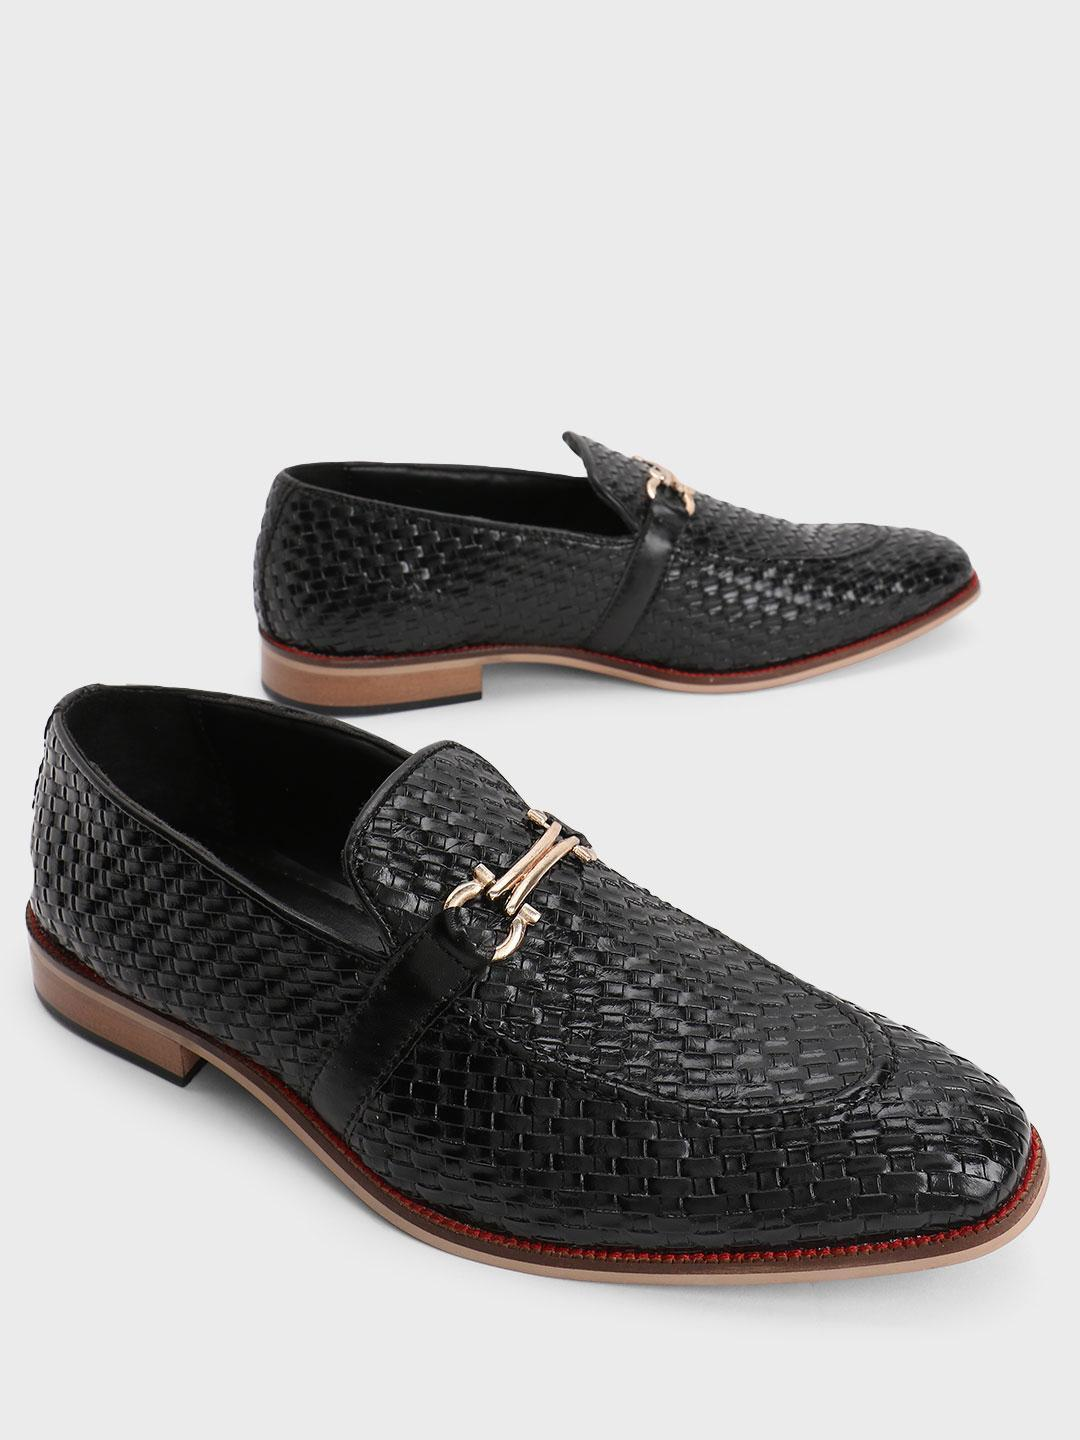 Bolt Of The Good Stuff Black Basket Weave Horsebit Loafers 1